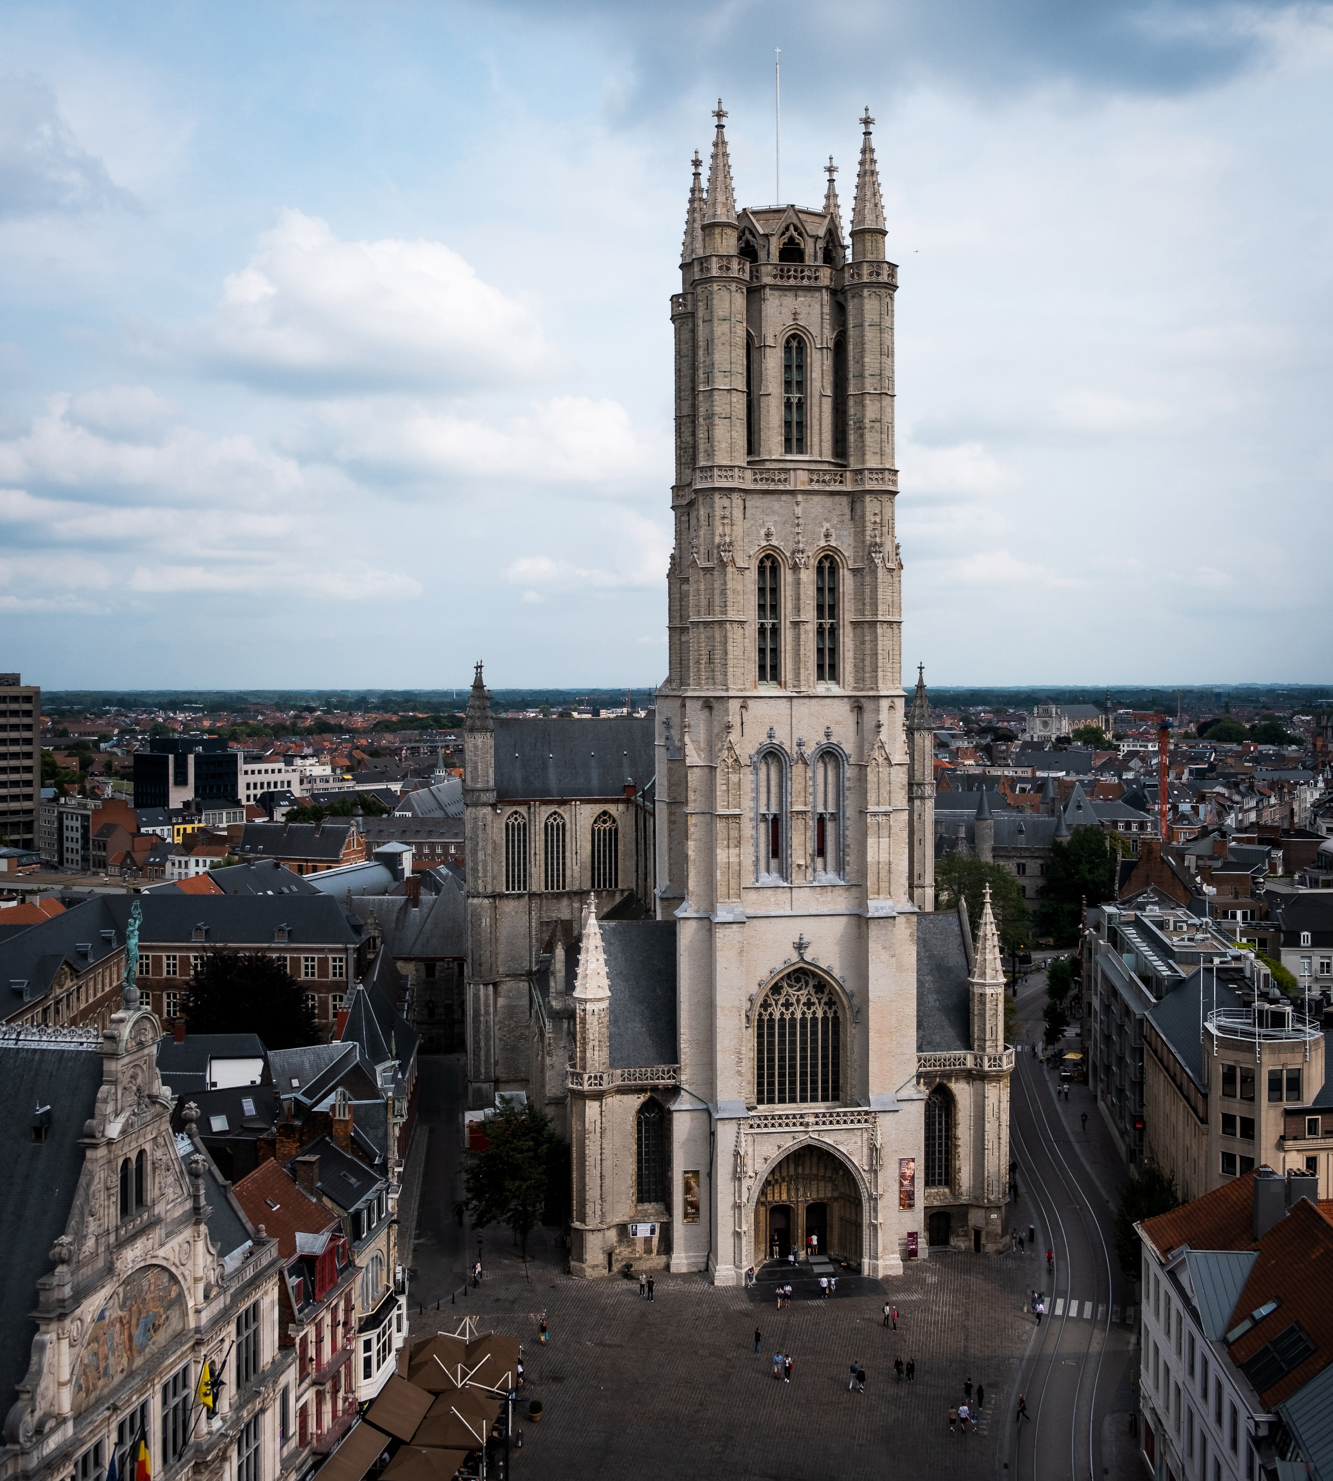 Saint Bavo Cathedral taken from the top of the Belfry of Ghent | Fujifilm XT-30 | XF18-55mm | 18mm | 1/3,000 Second | f/2.8 | ISO160